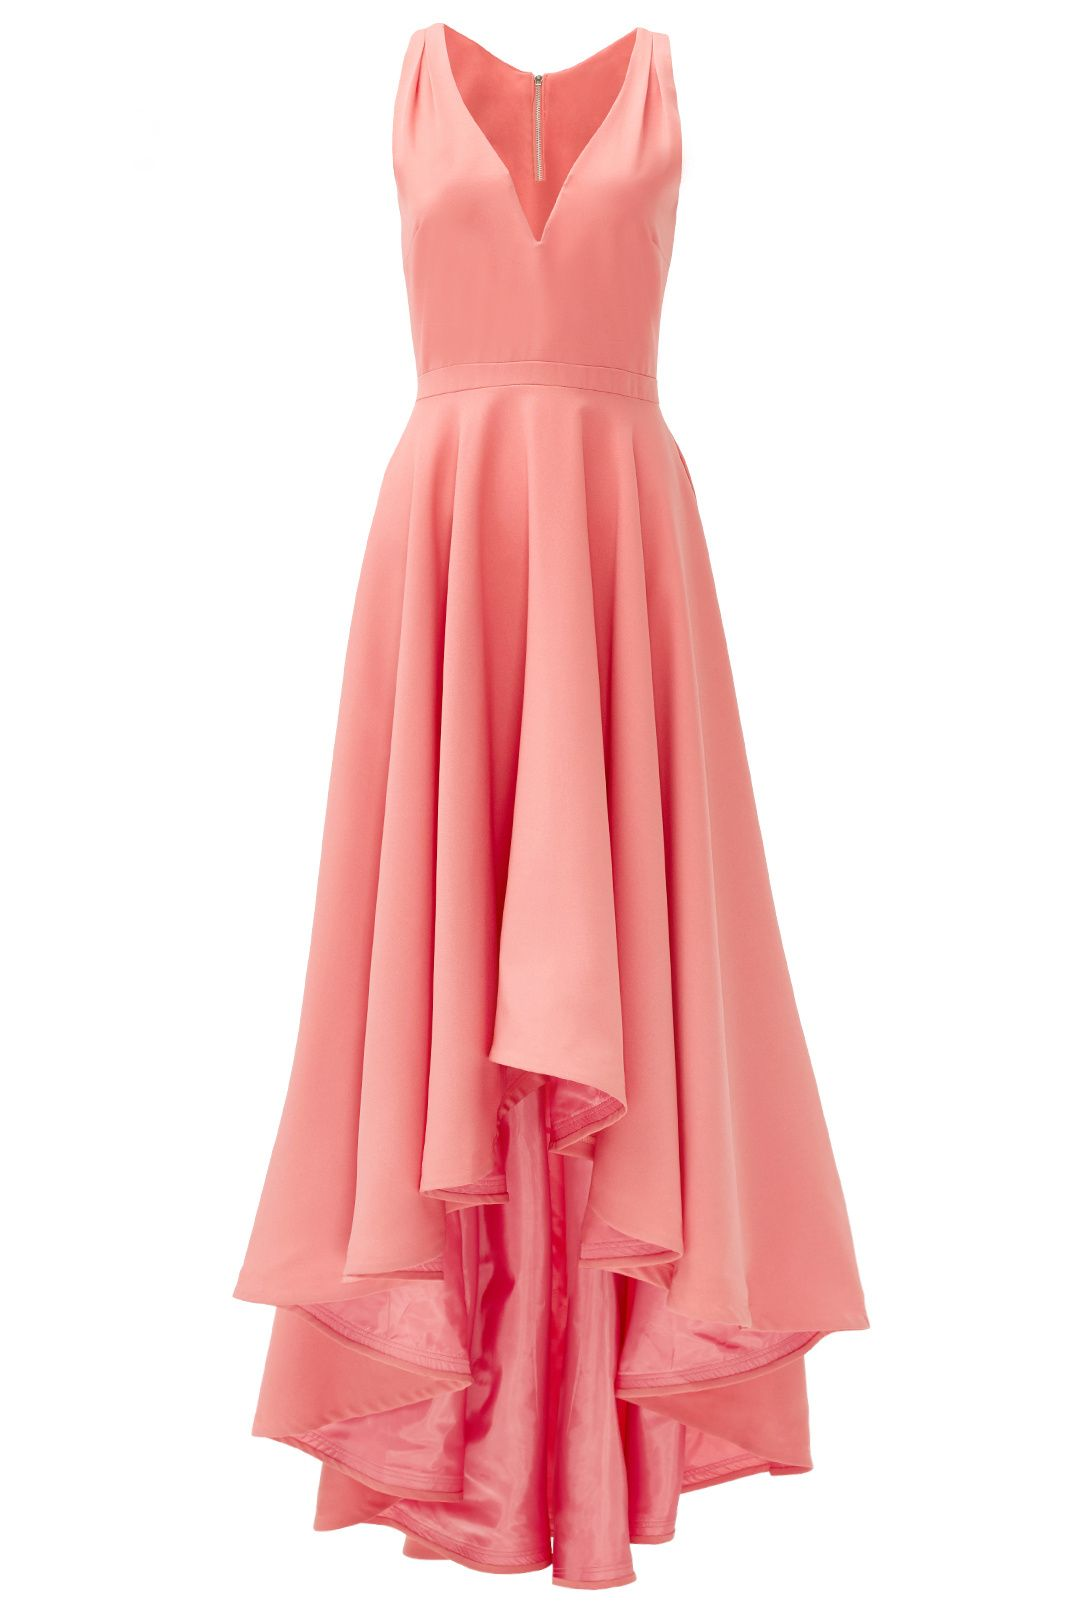 Summer dresses to wear to a wedding  Coral Marilyn Gown  Some Day  Pinterest  Gowns Coral dress and